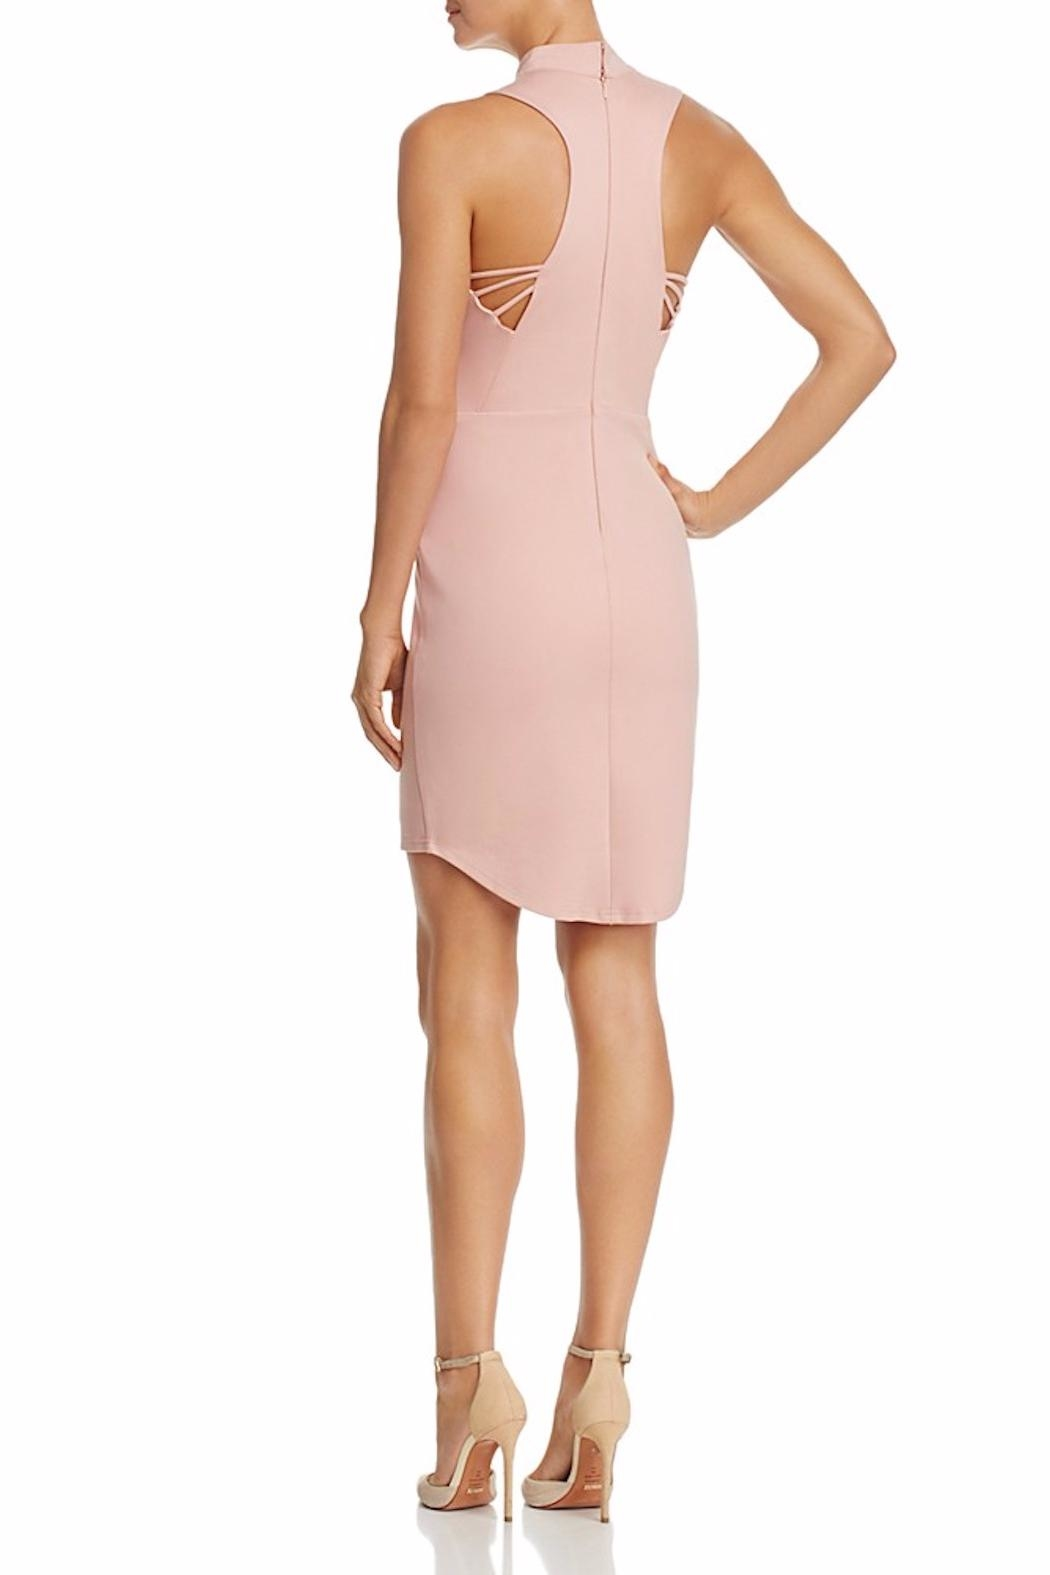 Adelyn Rae Blush Keyhole Dress - Front Full Image